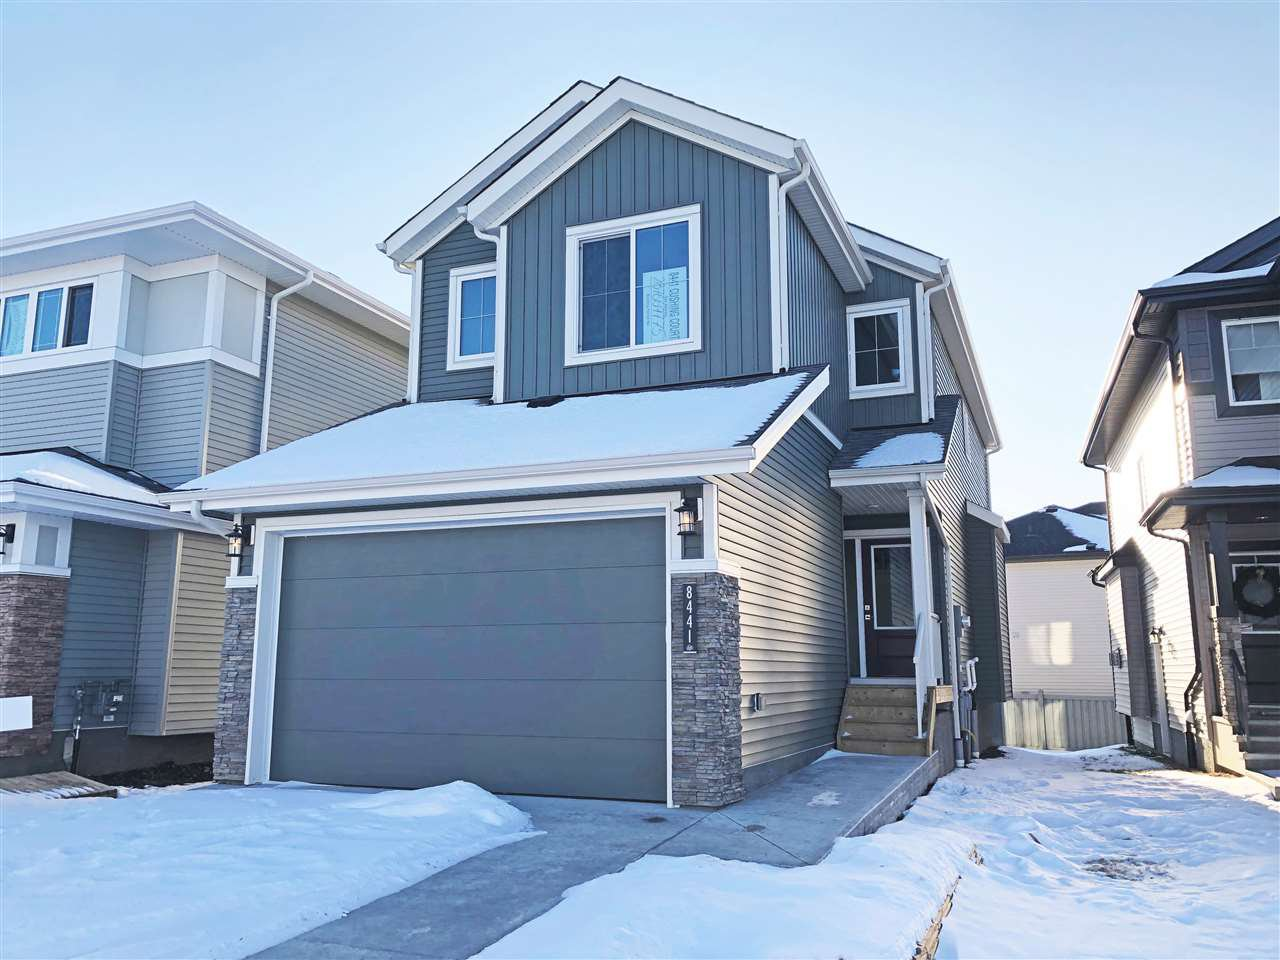 Main Photo: 8441 CUSHING Court in Edmonton: Zone 55 House for sale : MLS®# E4191927